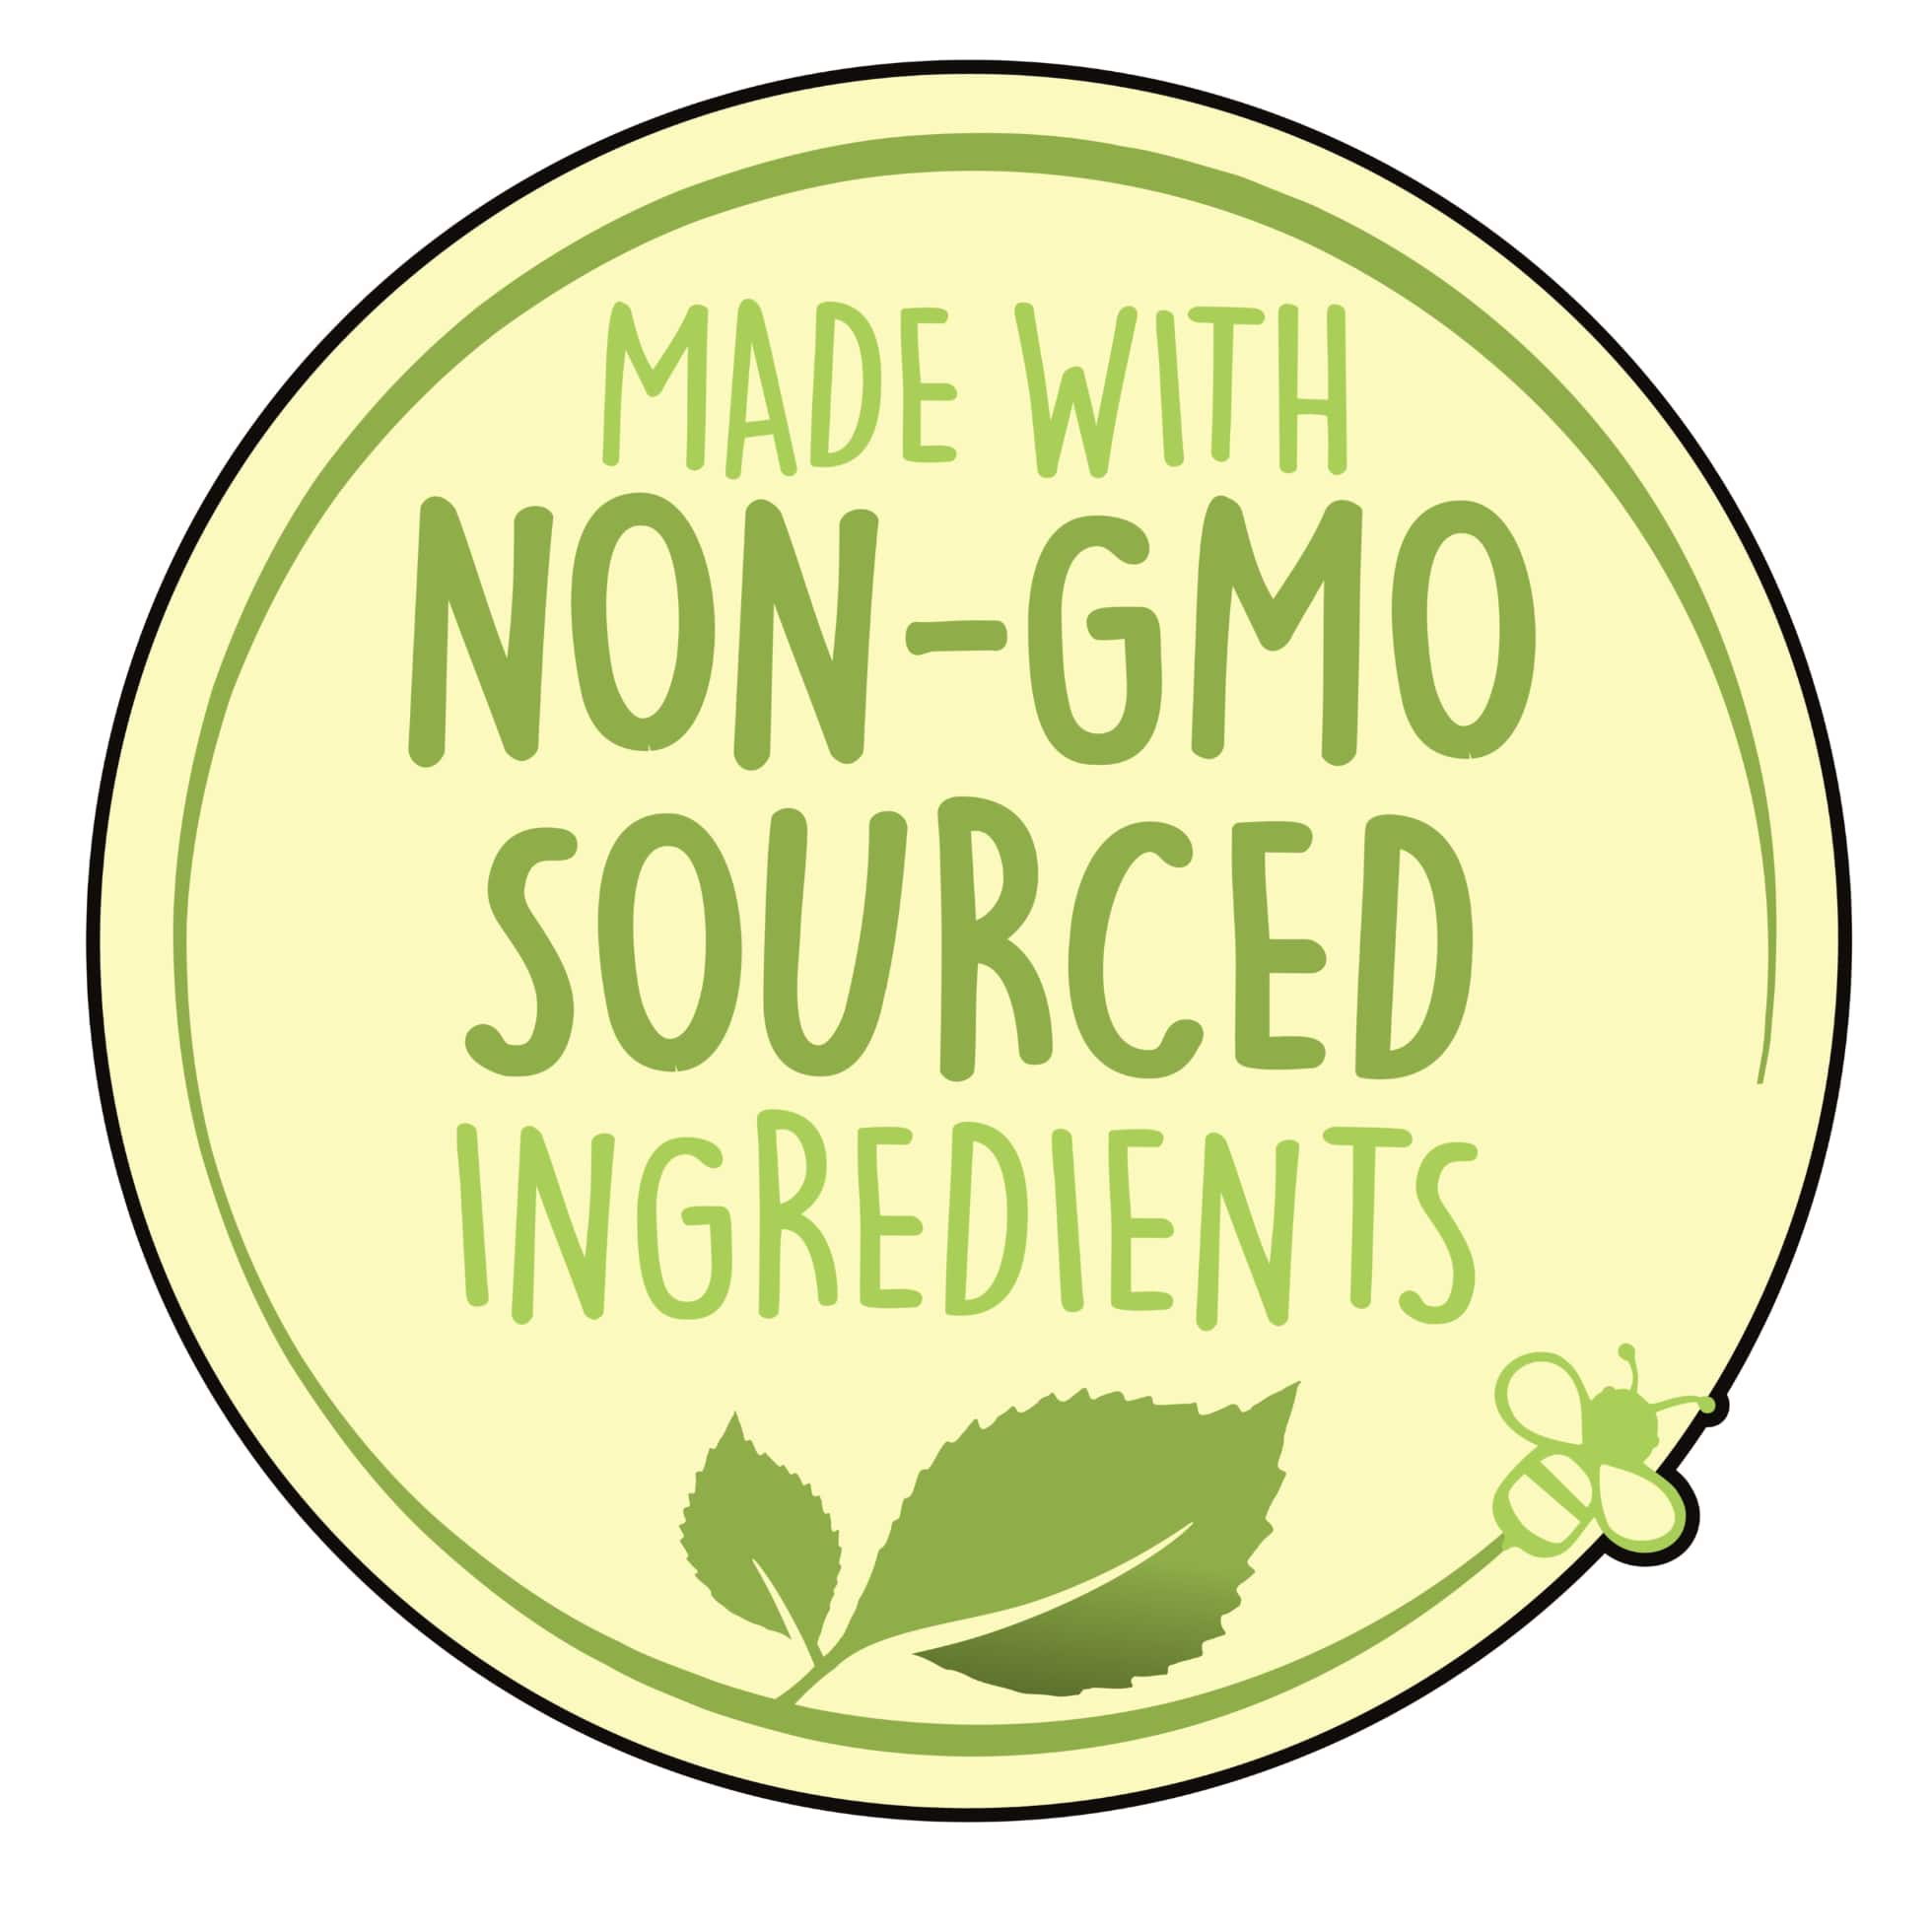 Made with Non-GMO sourced ingredients logo